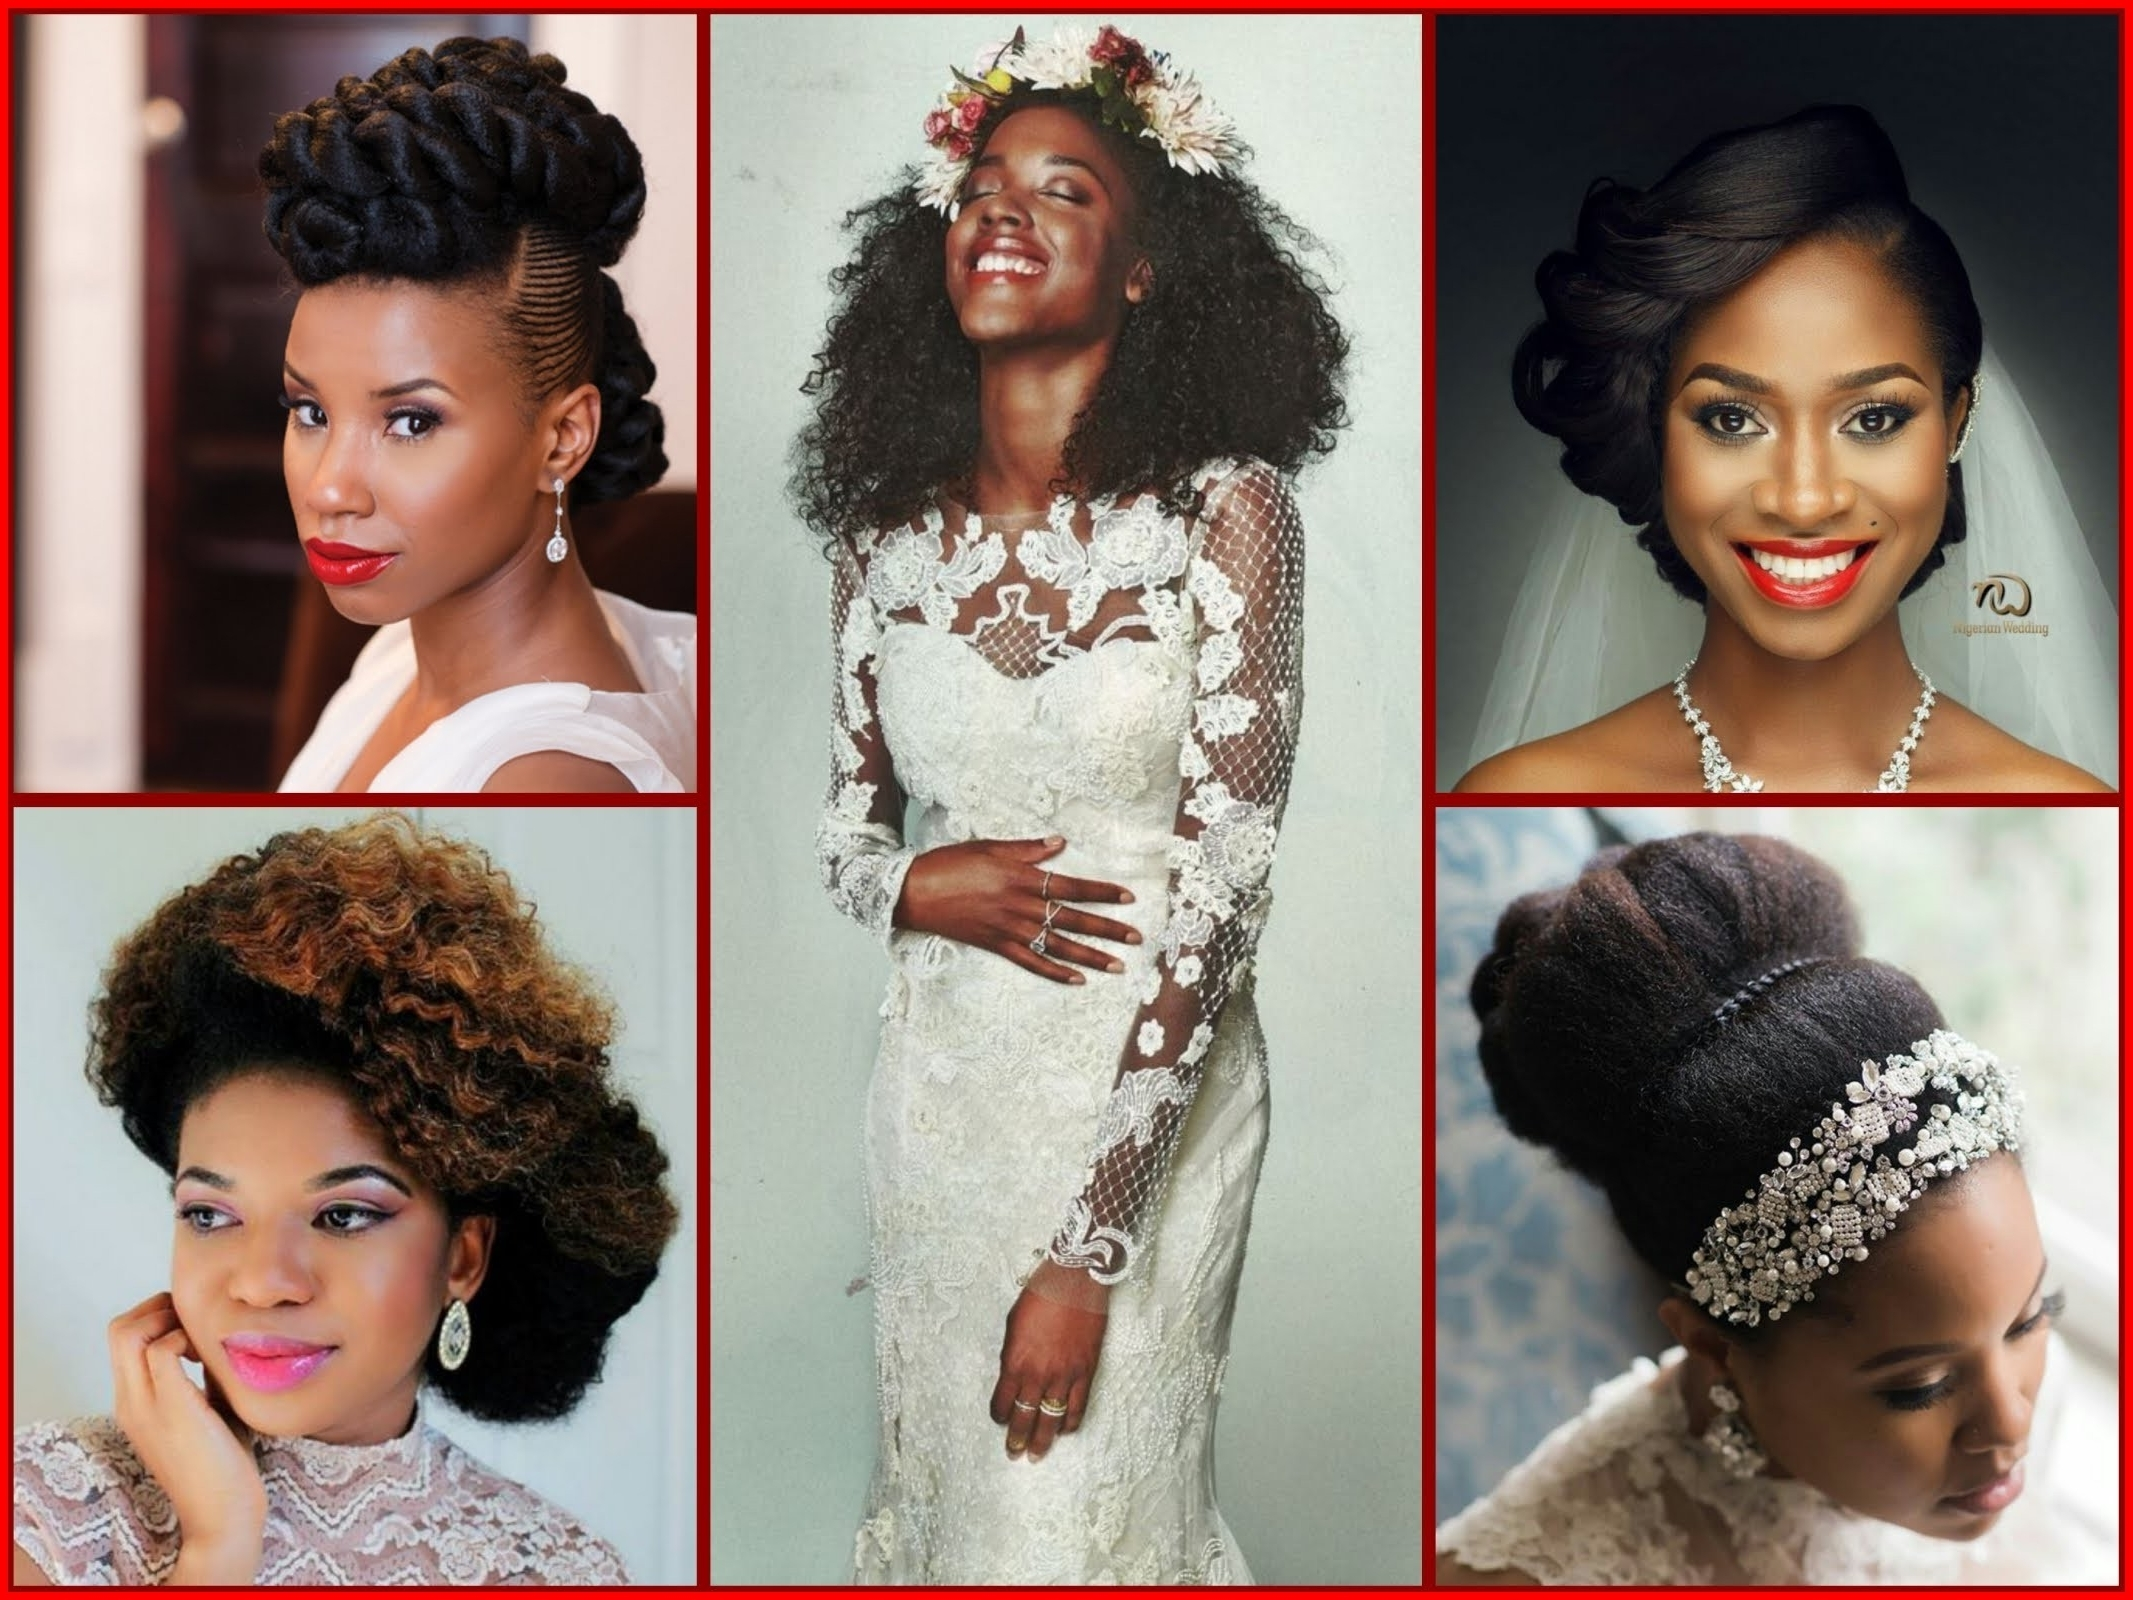 Updo Hairstyles For Black Bridesmaids 273247 Black Women Wedding Pertaining To Well Known Wedding Hairstyles With Braids For Black Bridesmaids (View 15 of 15)